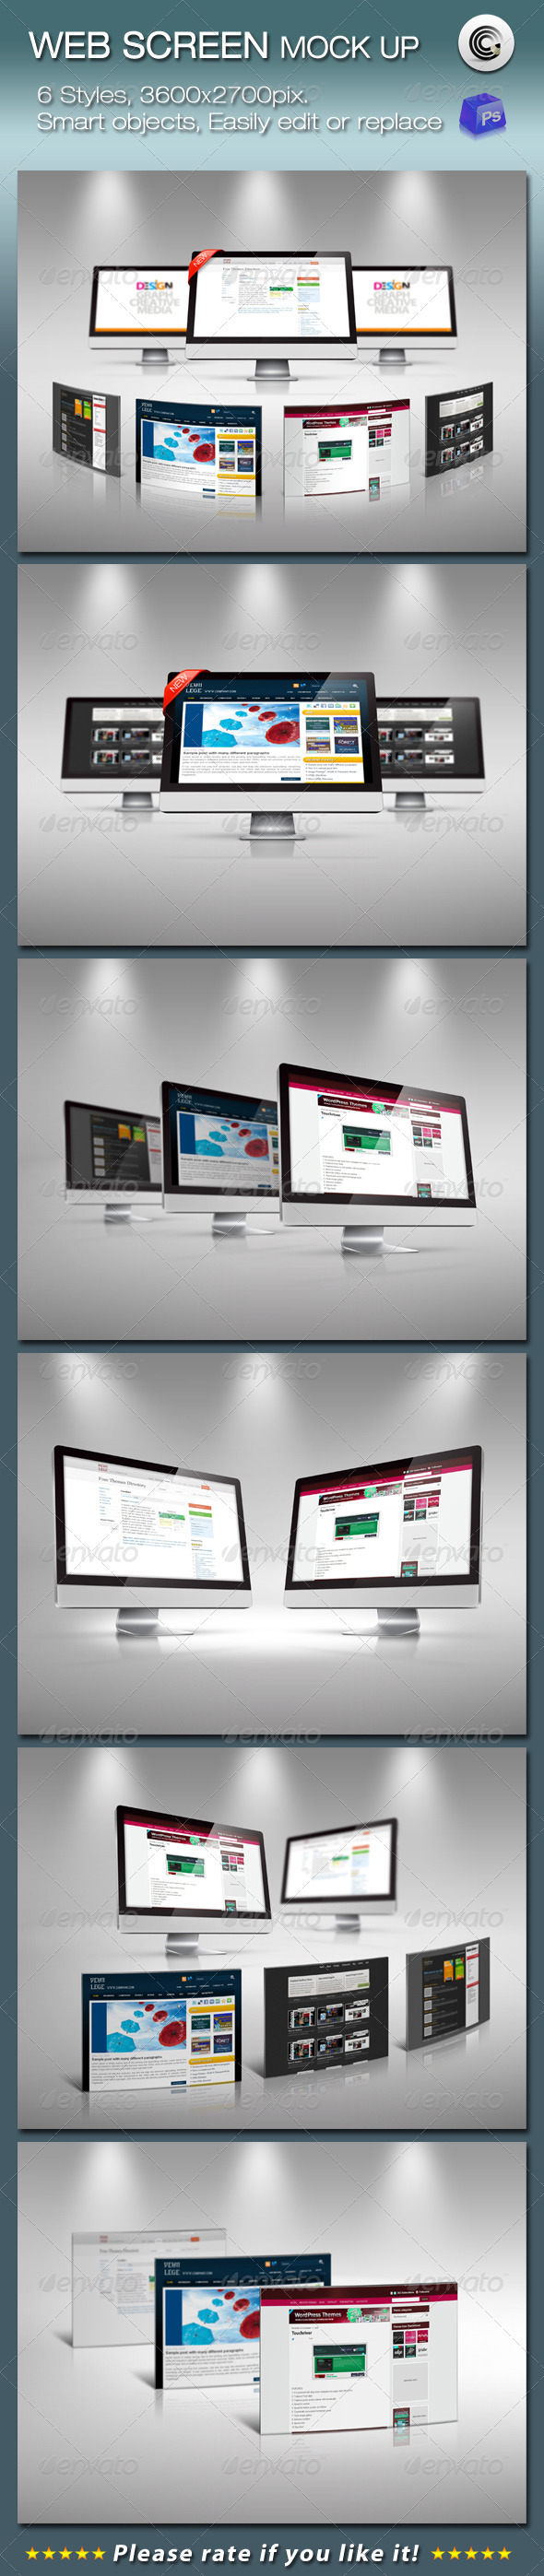 6 Styles Web Screen Mock-up